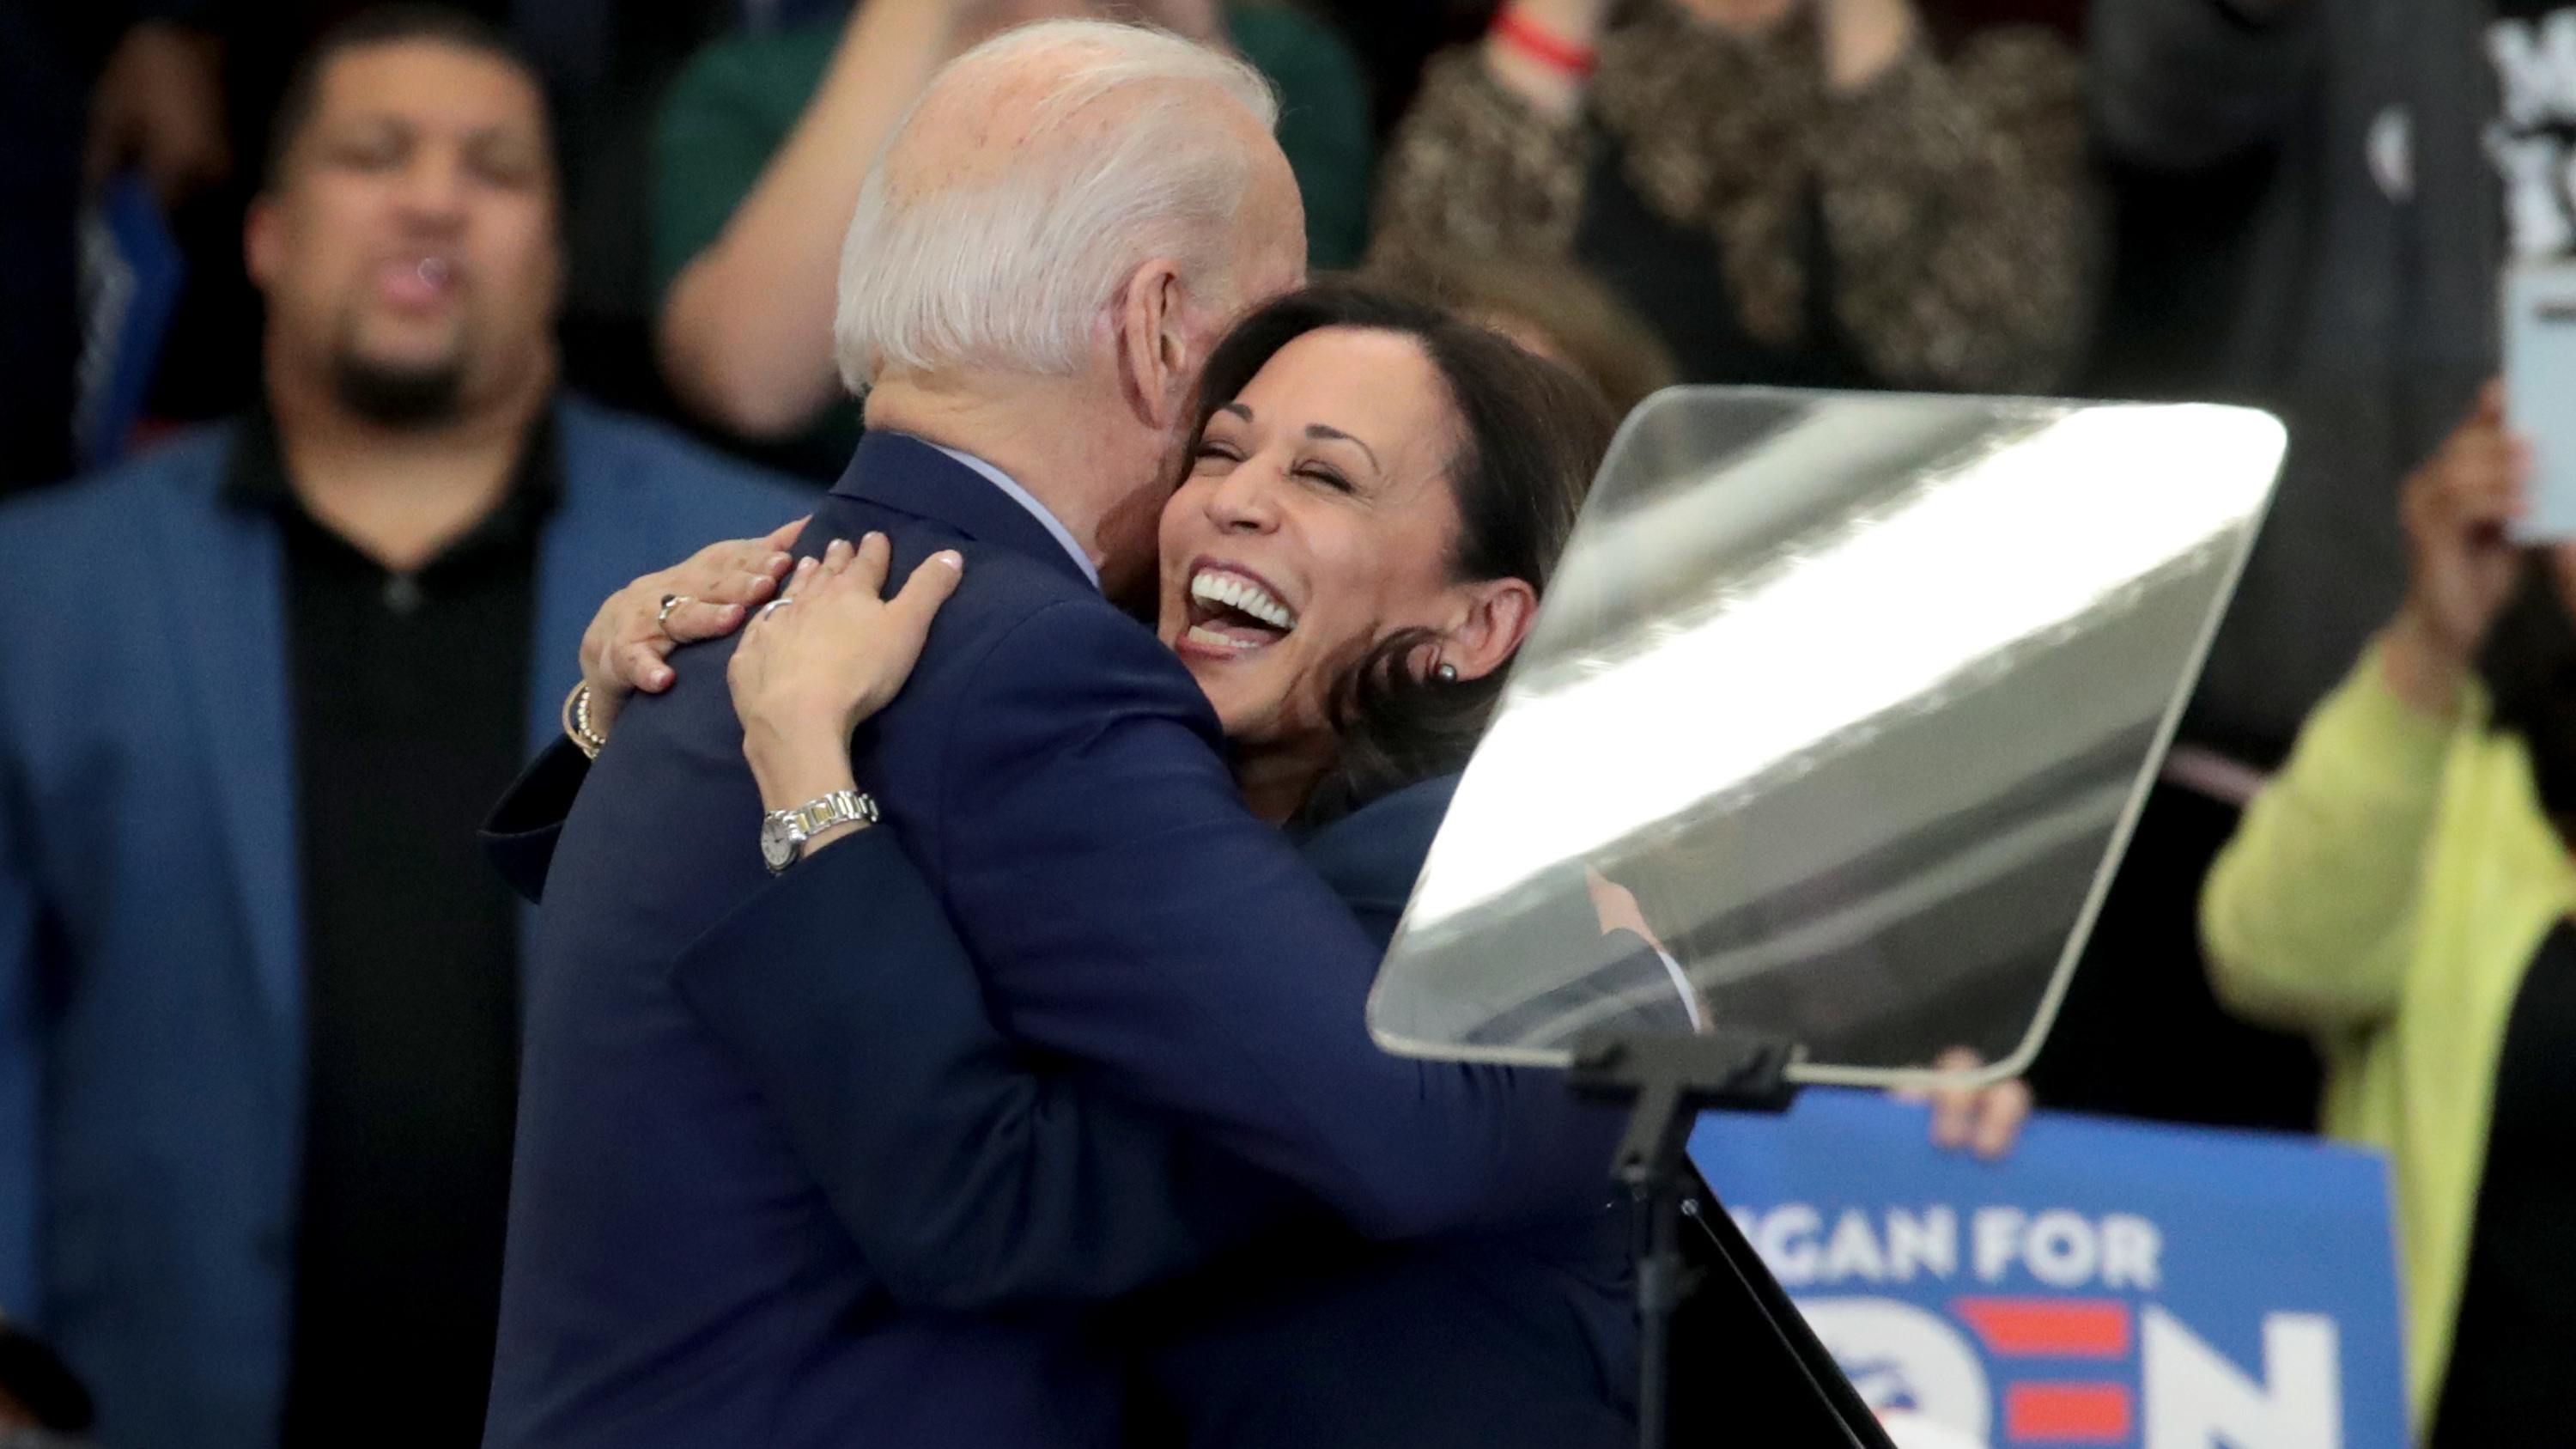 Who Is Kamala Harris Senator From California Is Biden S Vp Pick Npr Jill biden has been by joe biden's side since before his tenure as vice president, and even before his first run for president in 1987. https www npr org 2020 08 11 897427306 in historic pick joe biden taps kamala harris to be his running mate